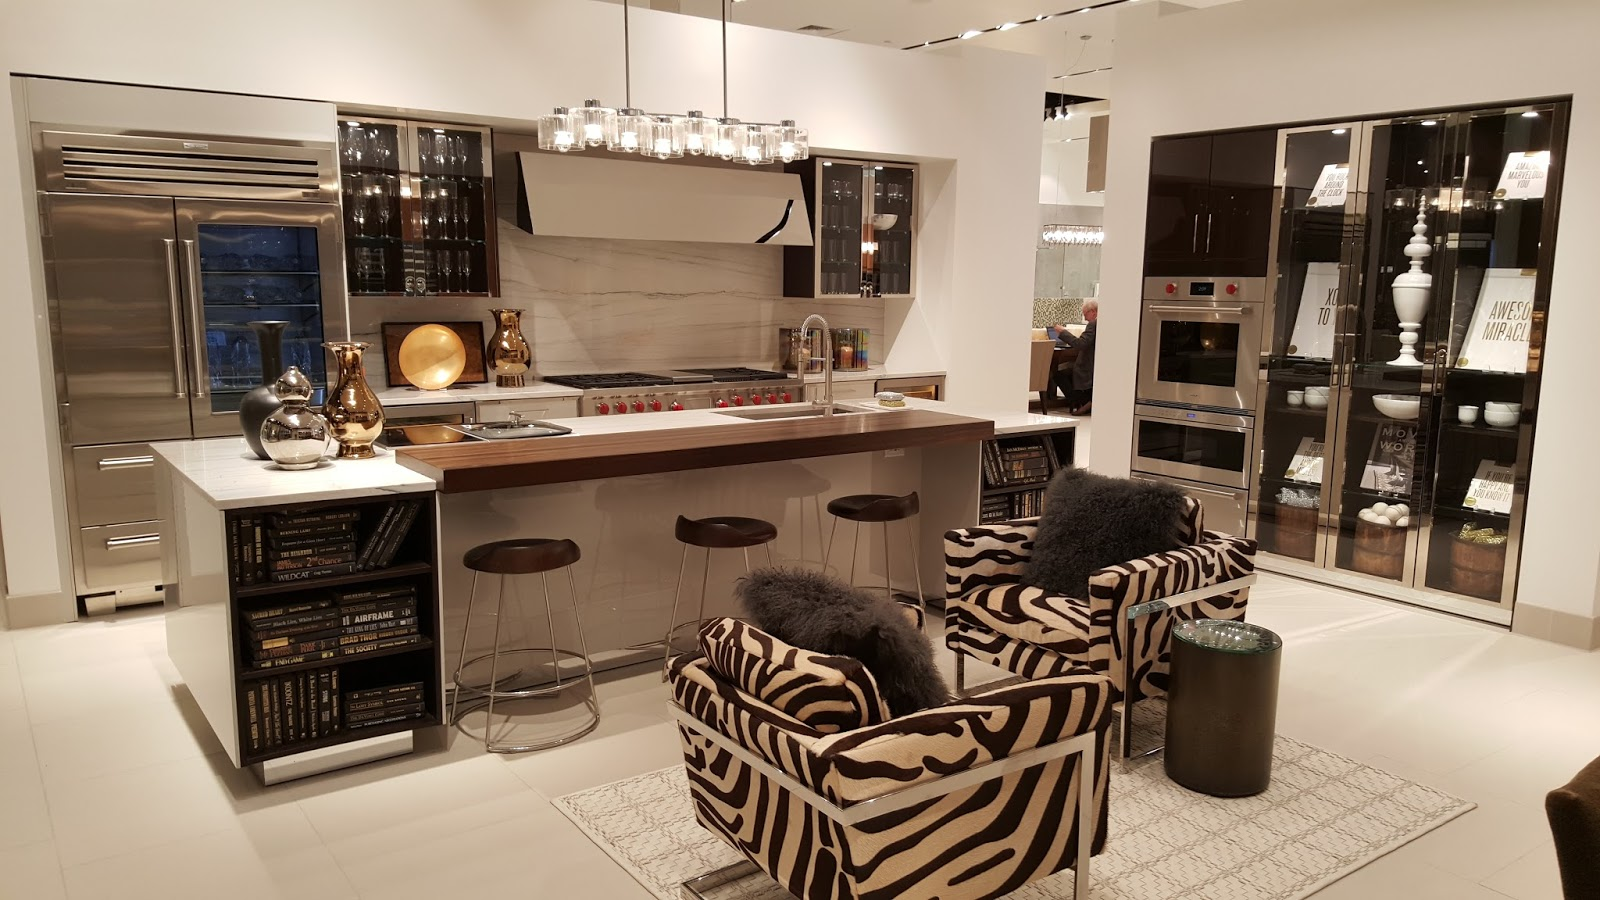 SieMatic At PIRCH AtlantaYour Dream Kitchen Awaits You Bryan - Kitchen design atlanta